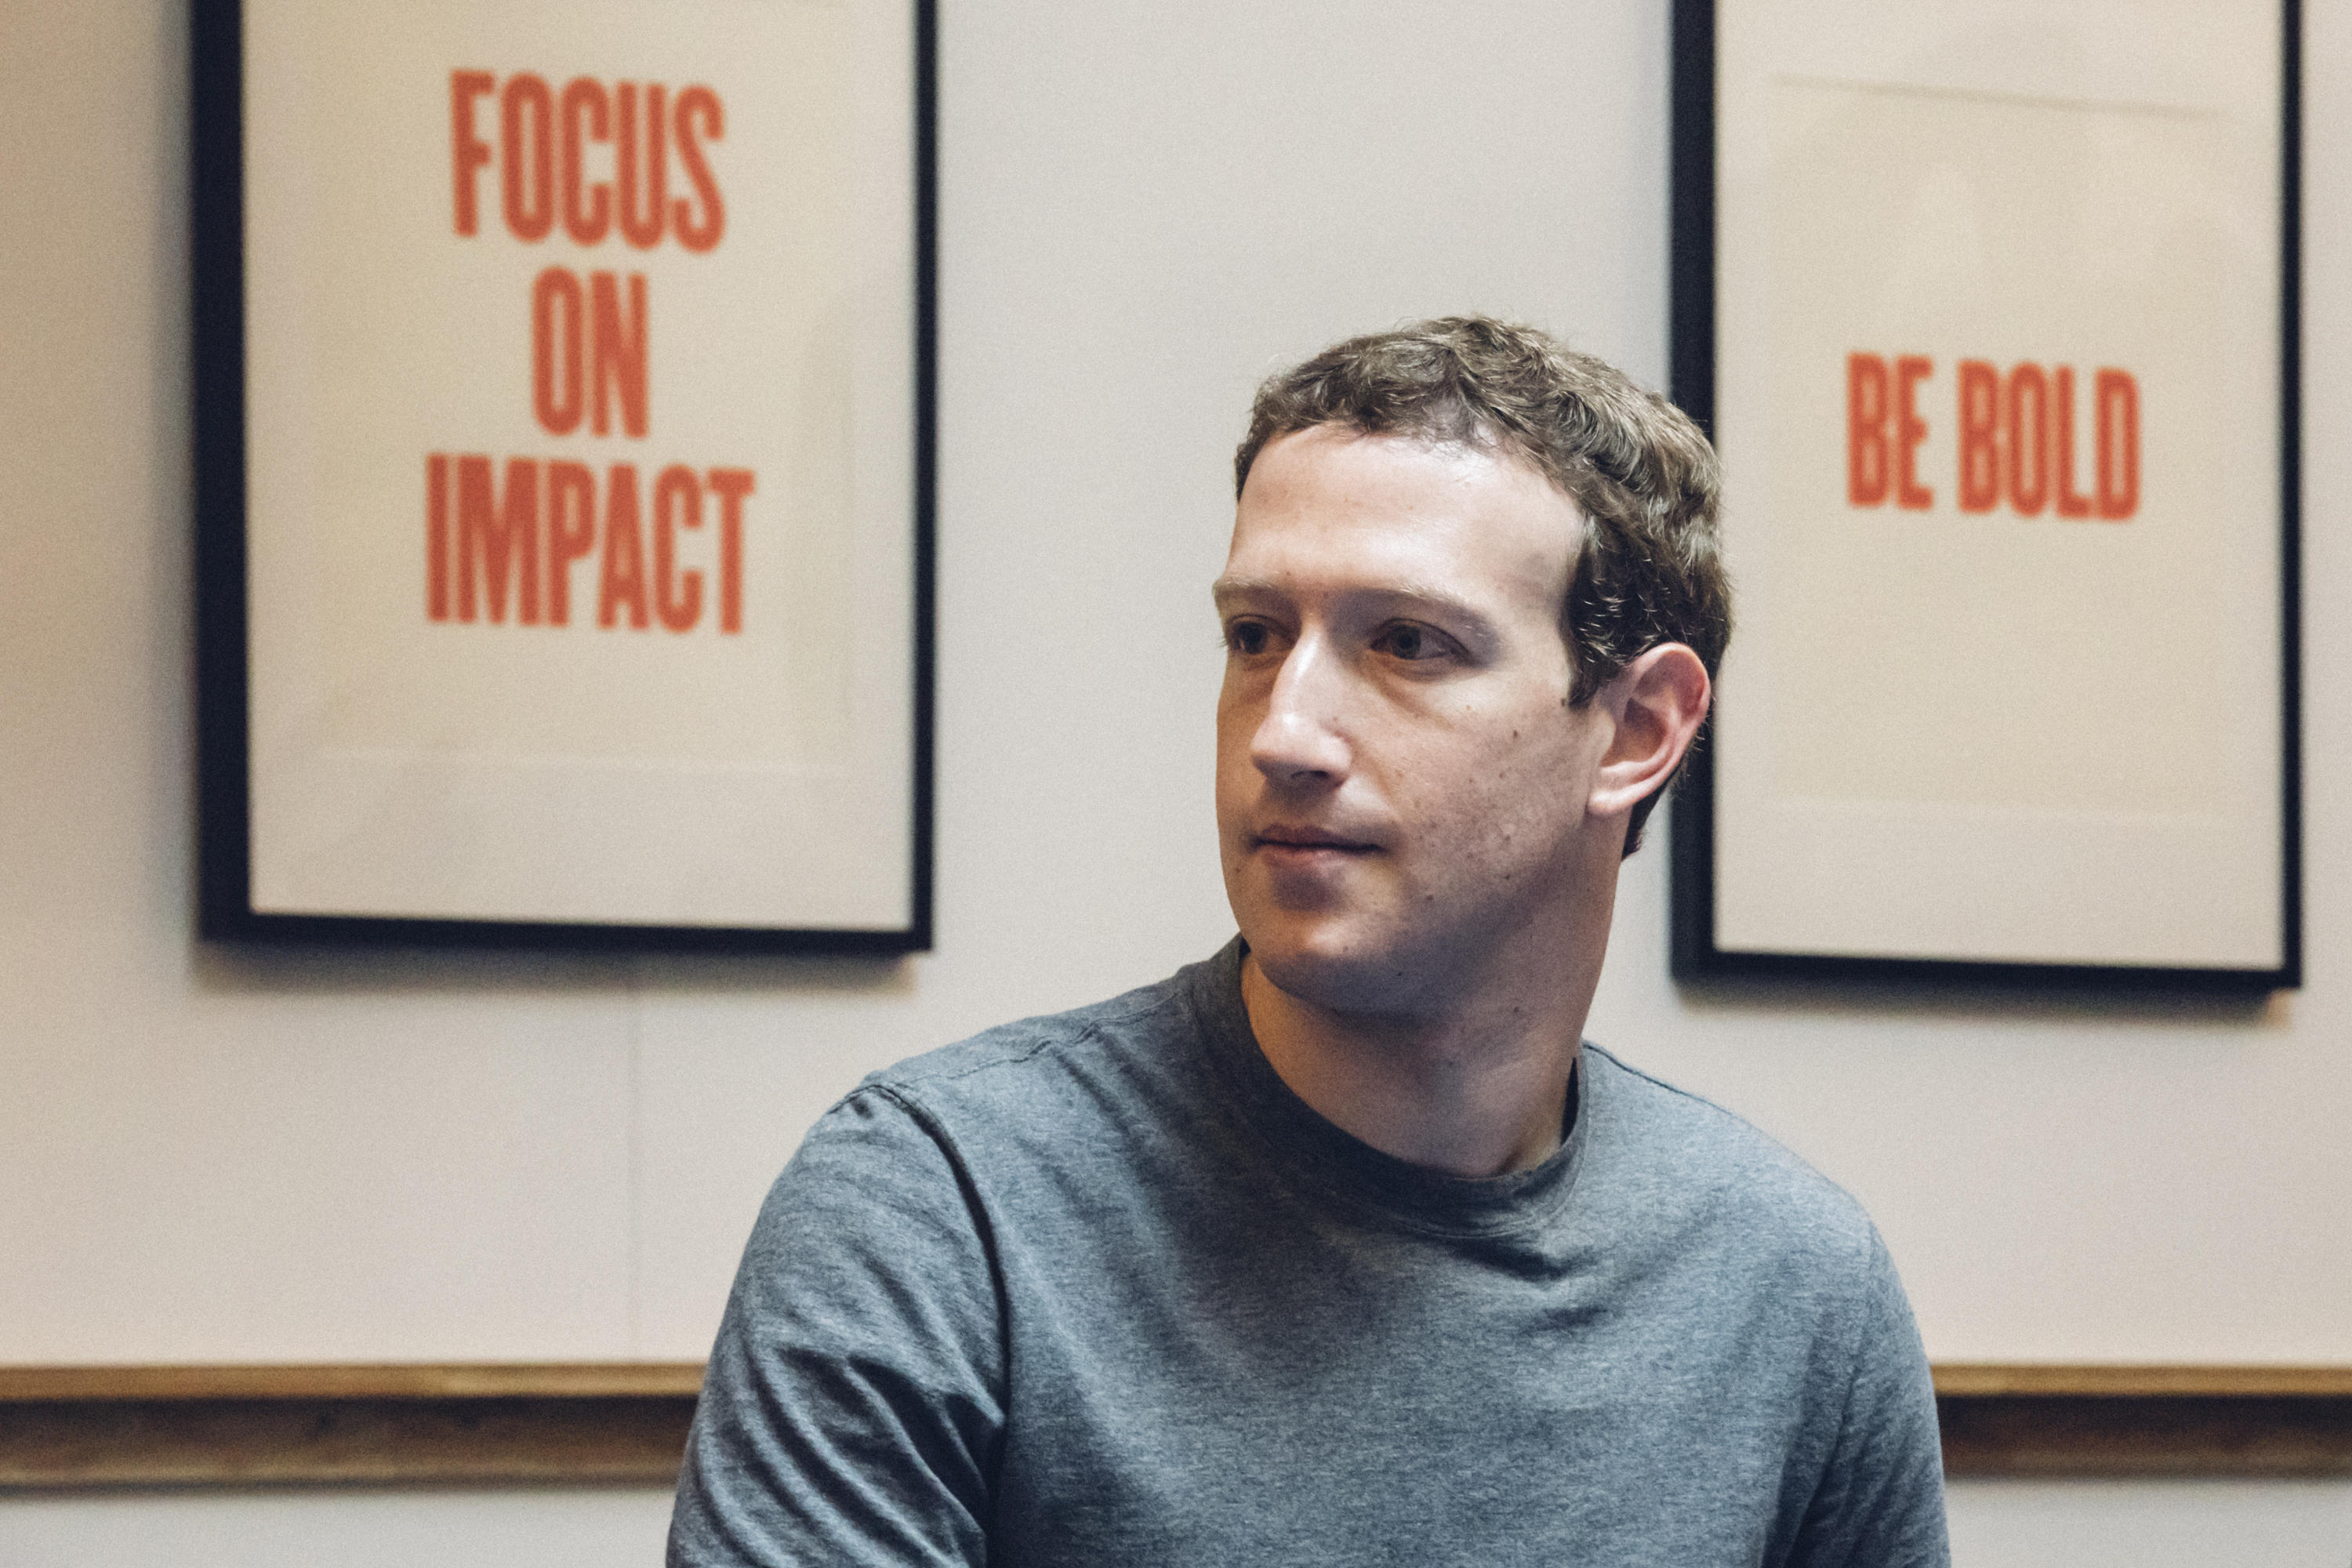 """Facebook CEO Mark Zuckerberg, in front of signs that say """"Focus on Impact"""" and """"Be Bold."""""""